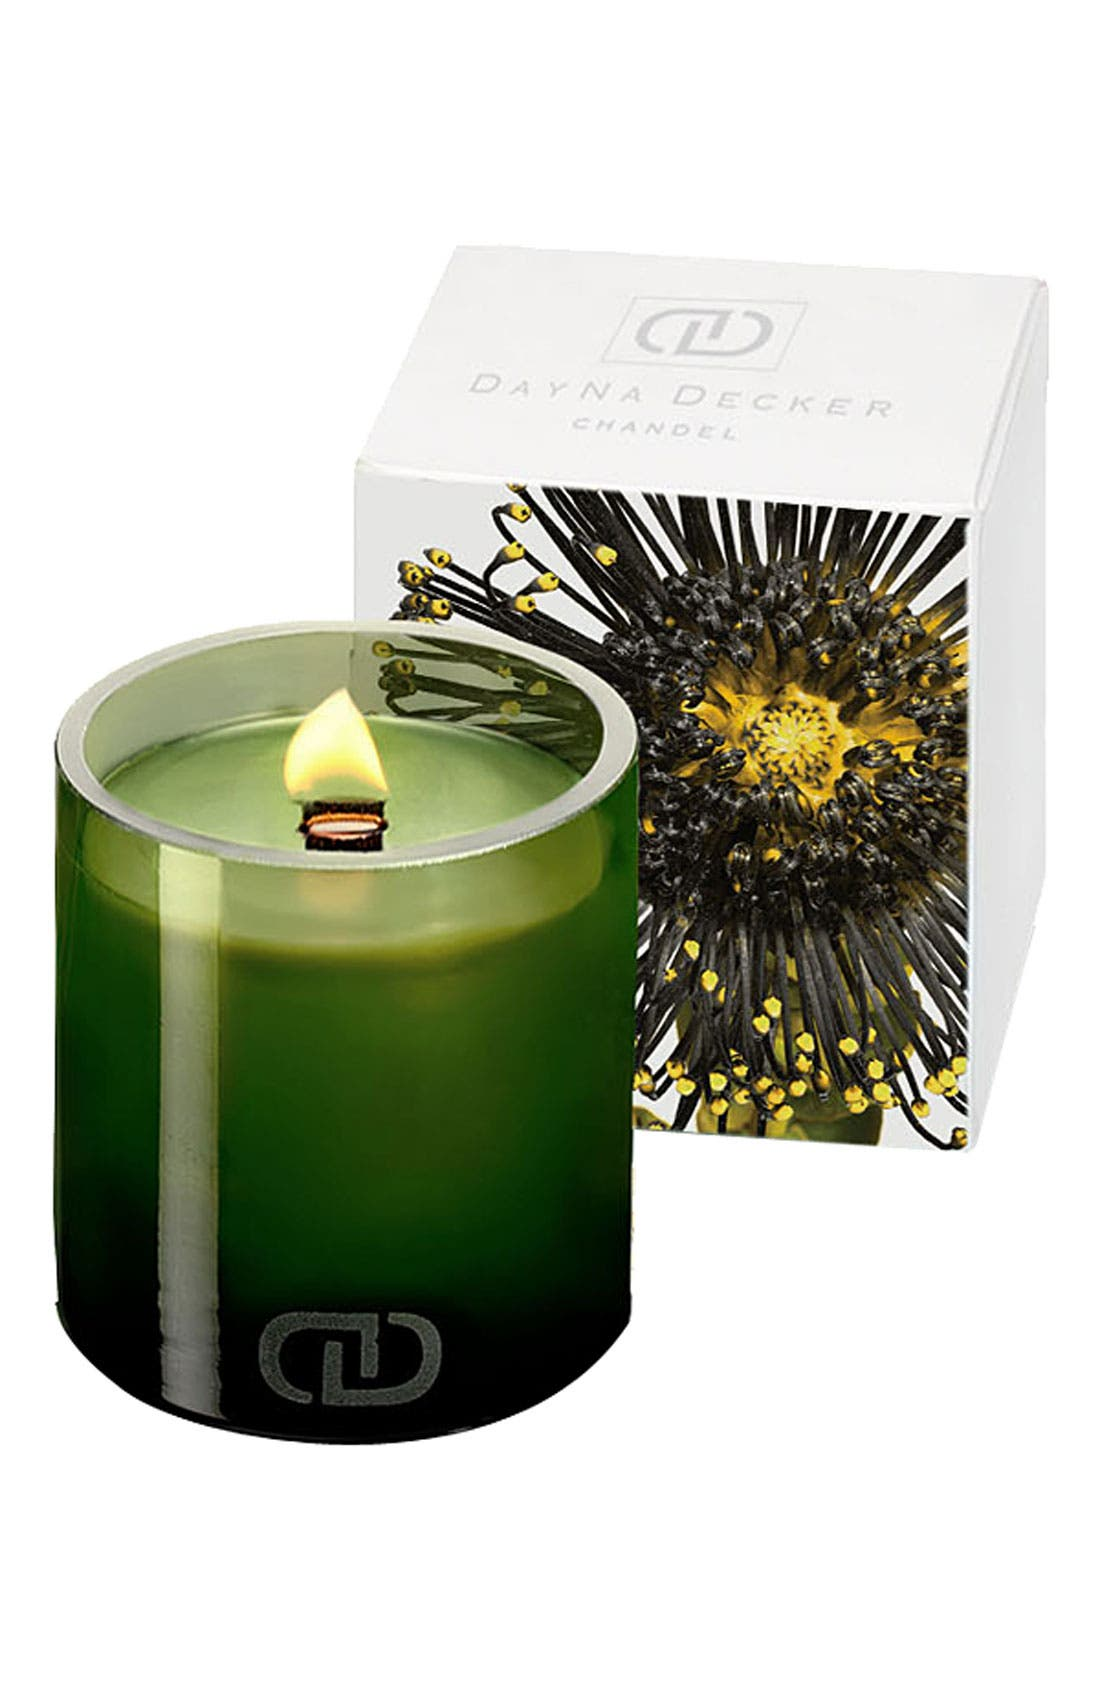 Alternate Image 1 Selected - DayNa Decker® 'Taiga' Chandel® Candle